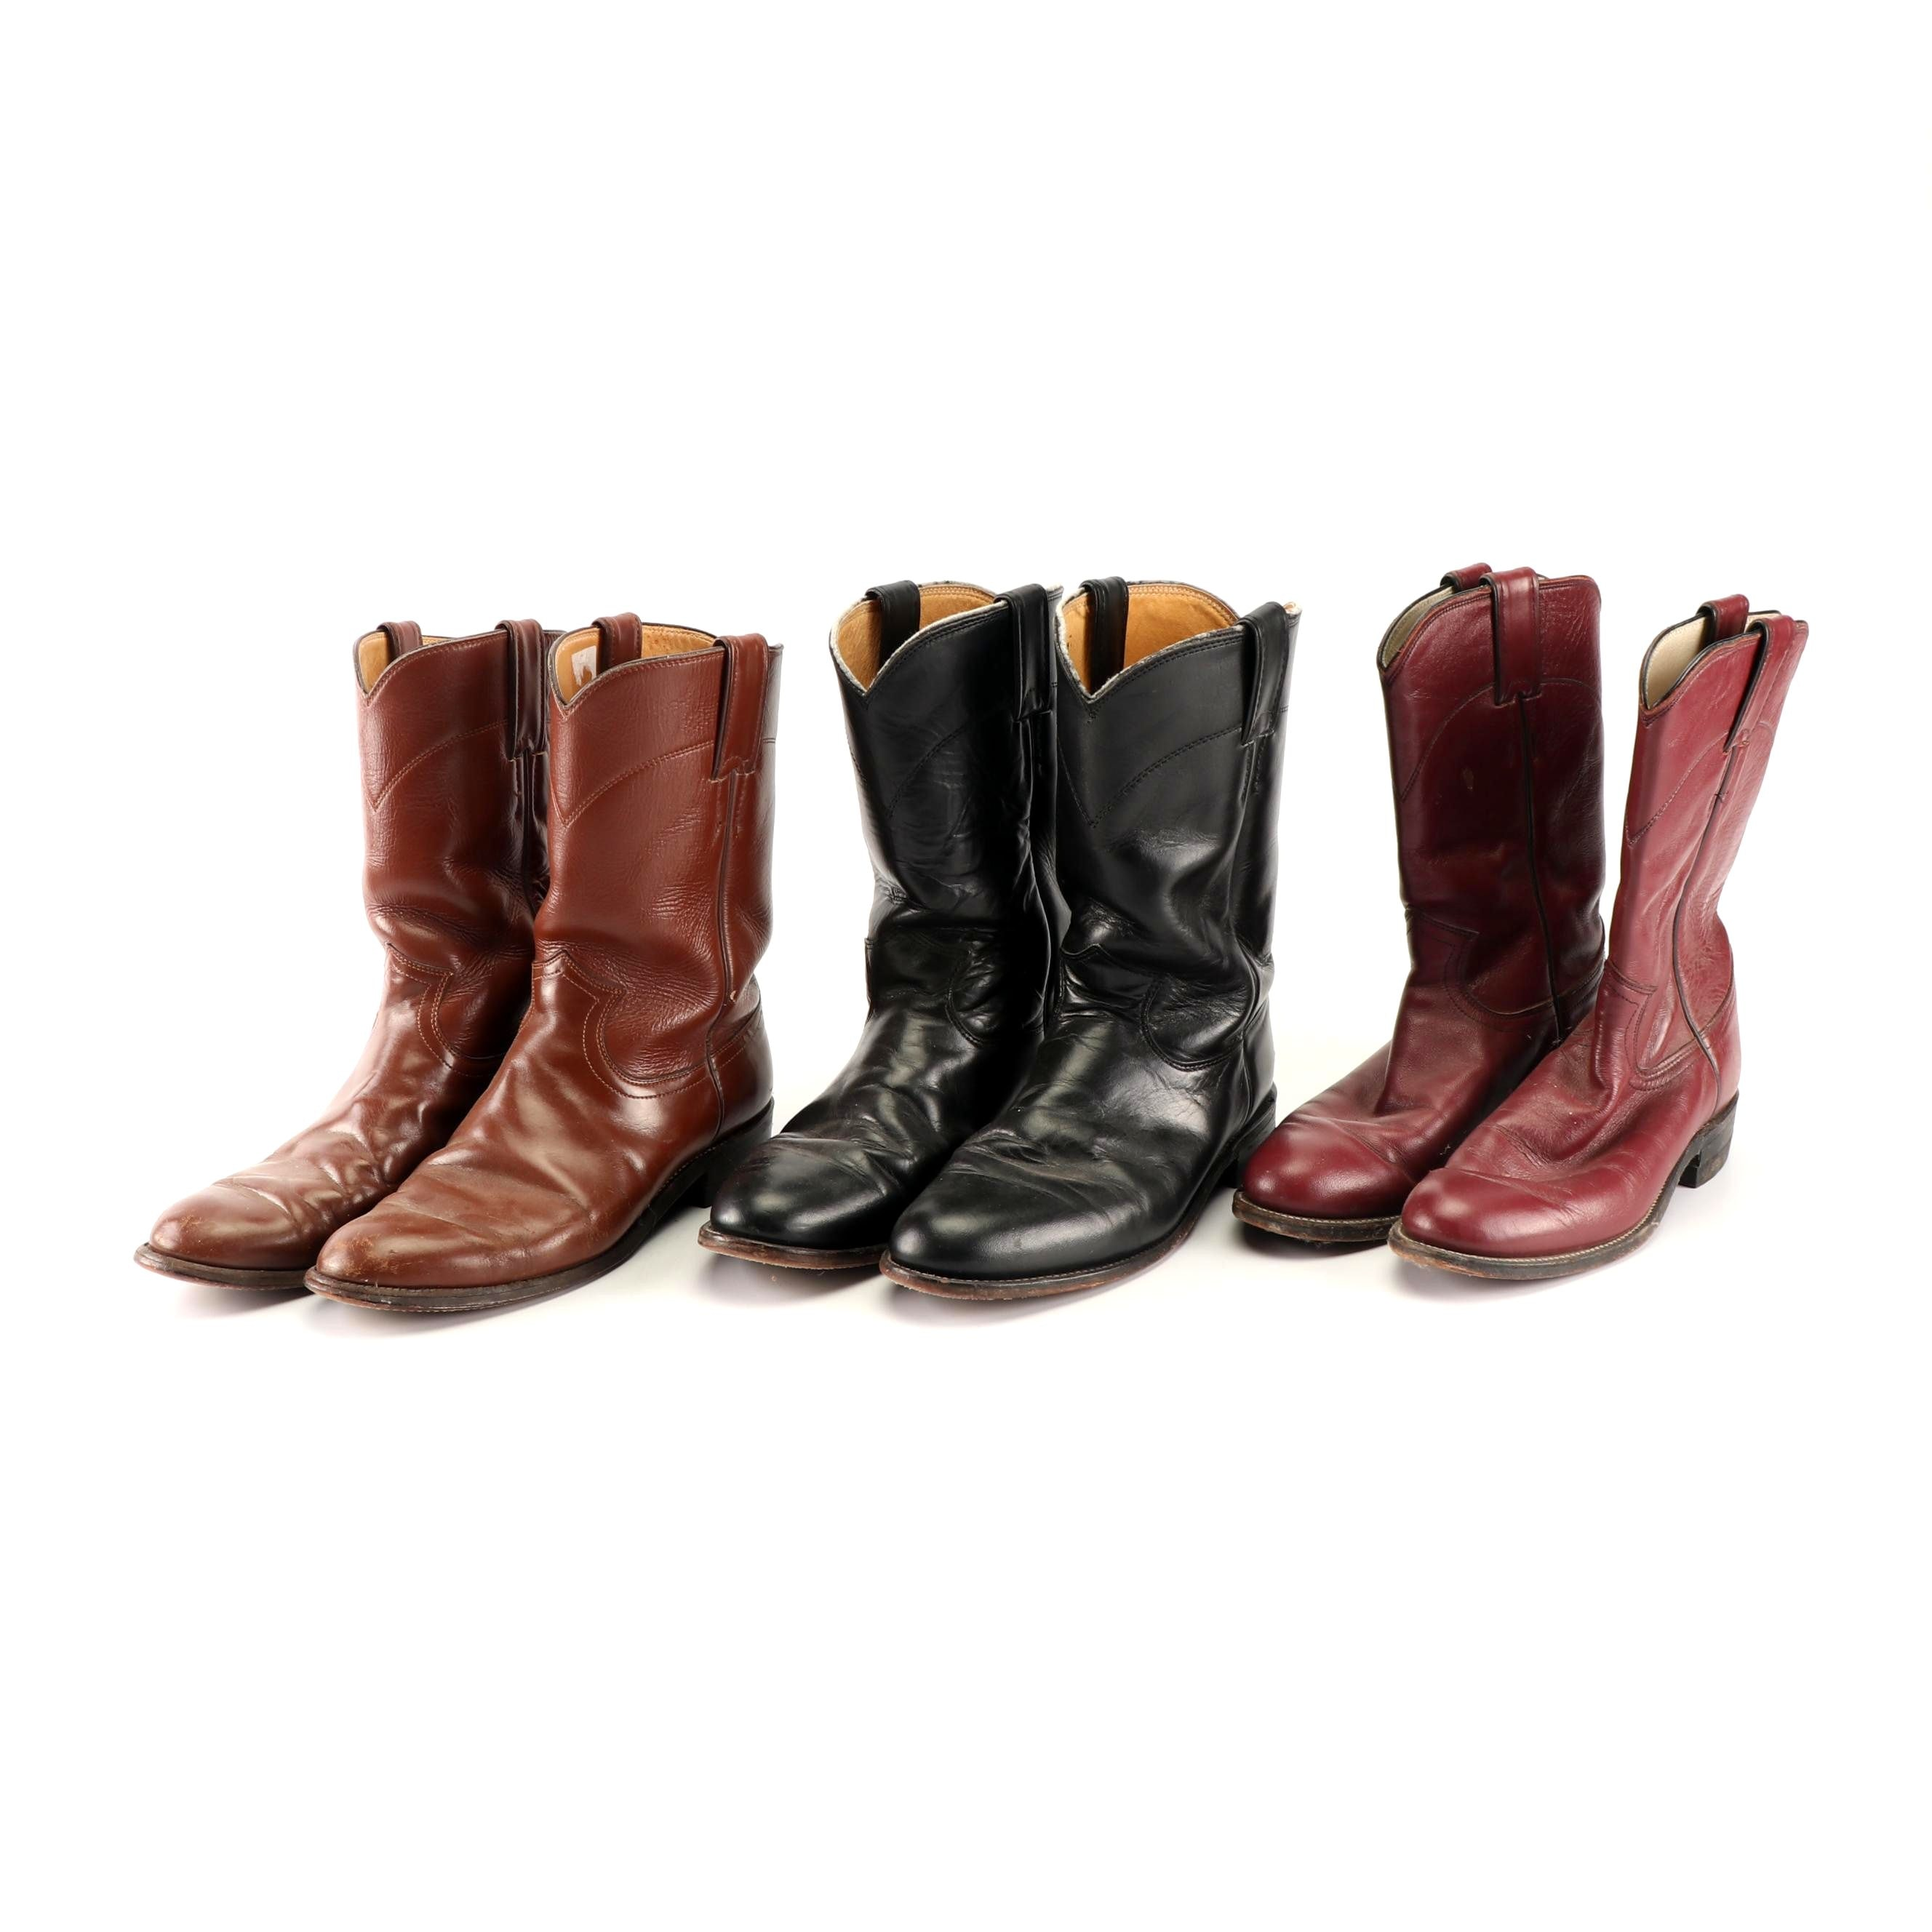 Women's Justin Western Boots in Black, Cognac and Dark Red Leather